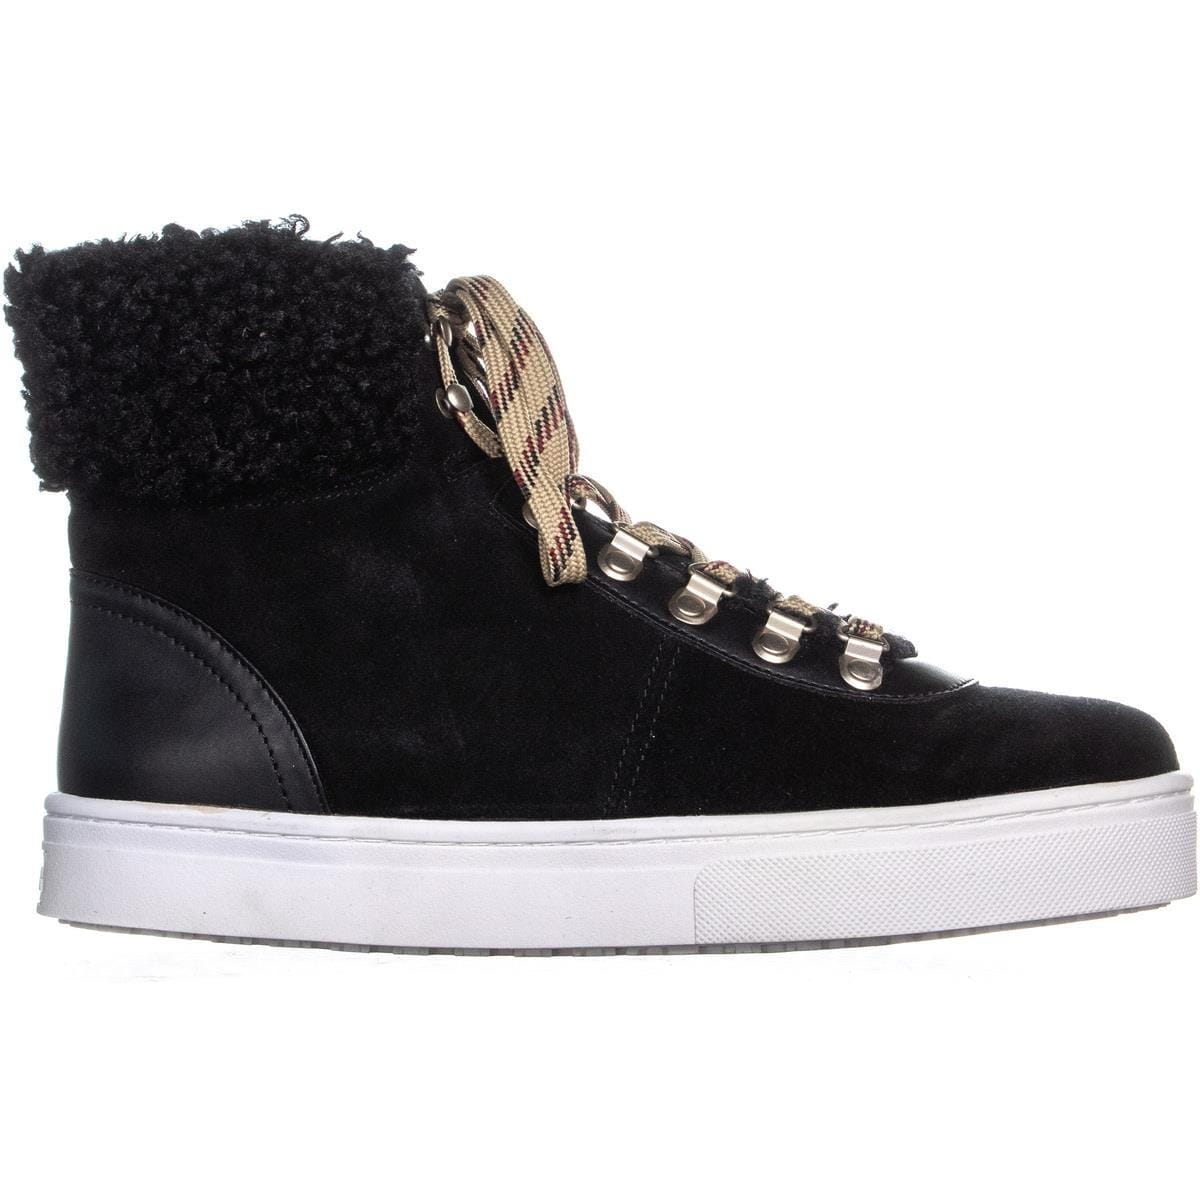 344954c137a9 Shop Sam Edelman Luther High-Top Fashion Sneakers